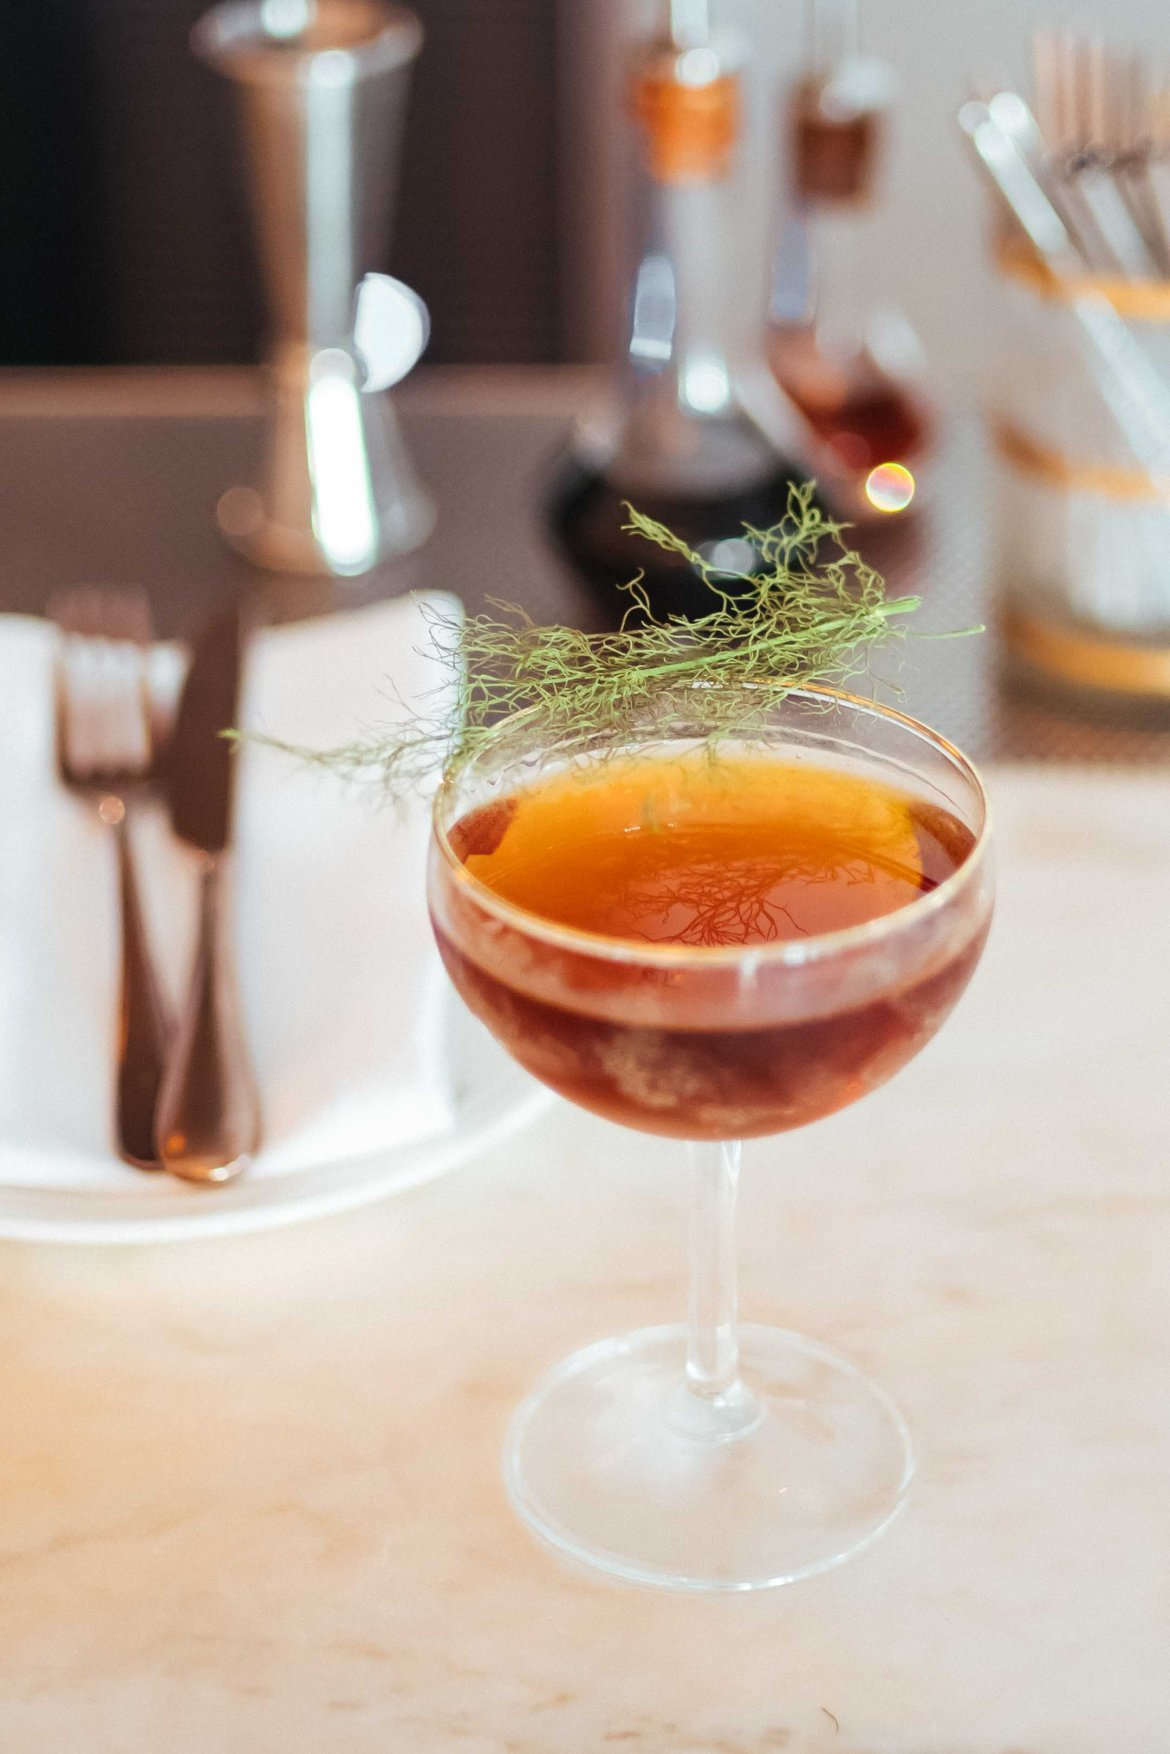 Find some of the best cocktails in Hollywood at Gwen Butcher Shop and Steakhouse Restaurant in Los Angeles, owned by Chef Curtis Stone.